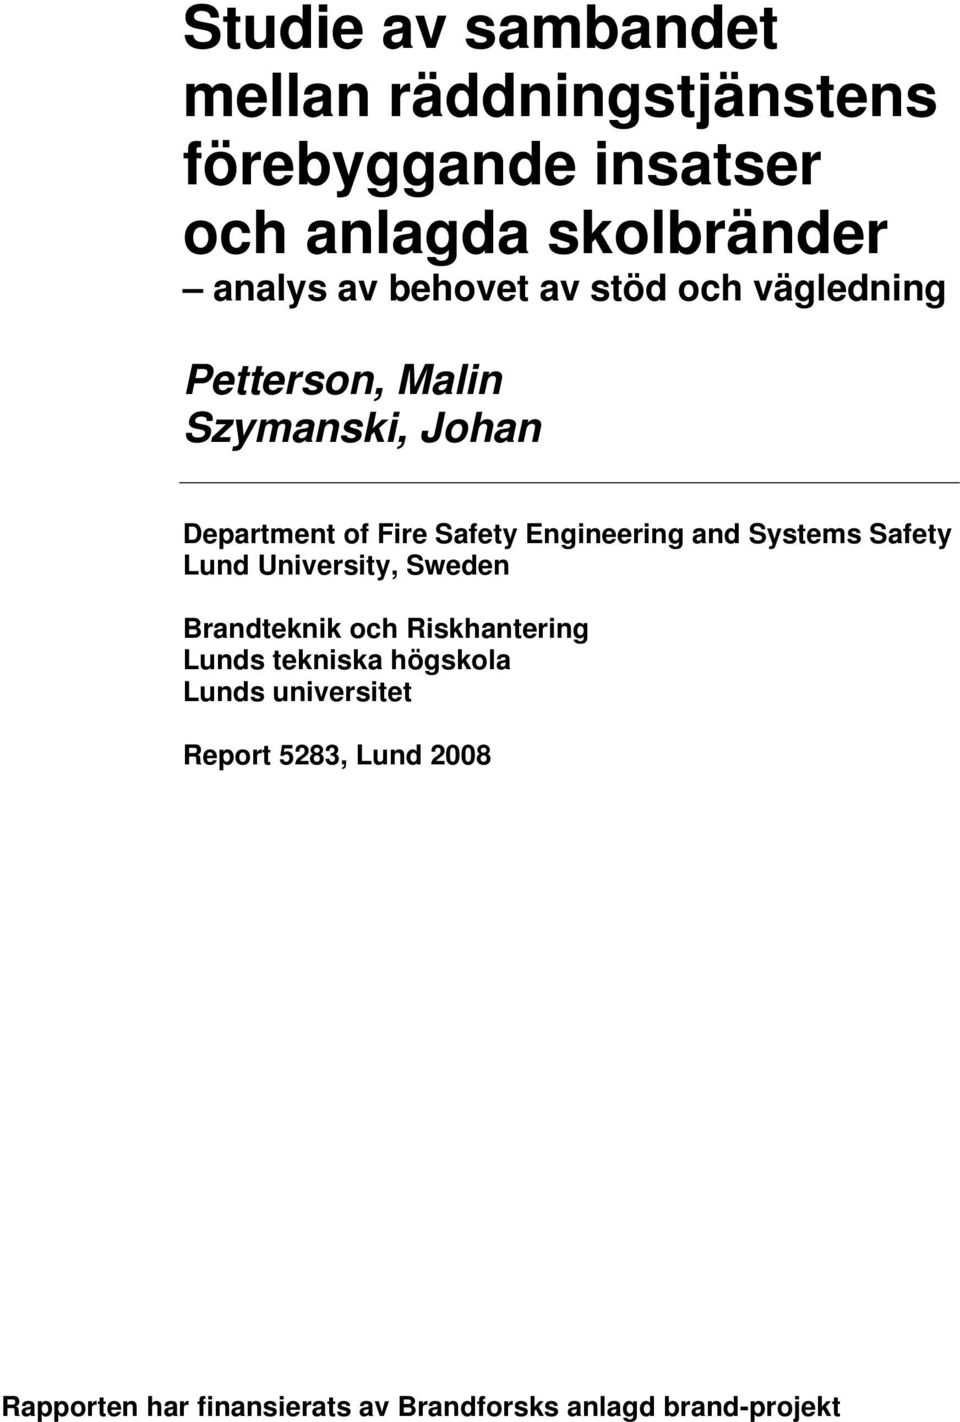 Engineering and Systems Safety Lund University, Sweden Brandteknik och Riskhantering Lunds tekniska